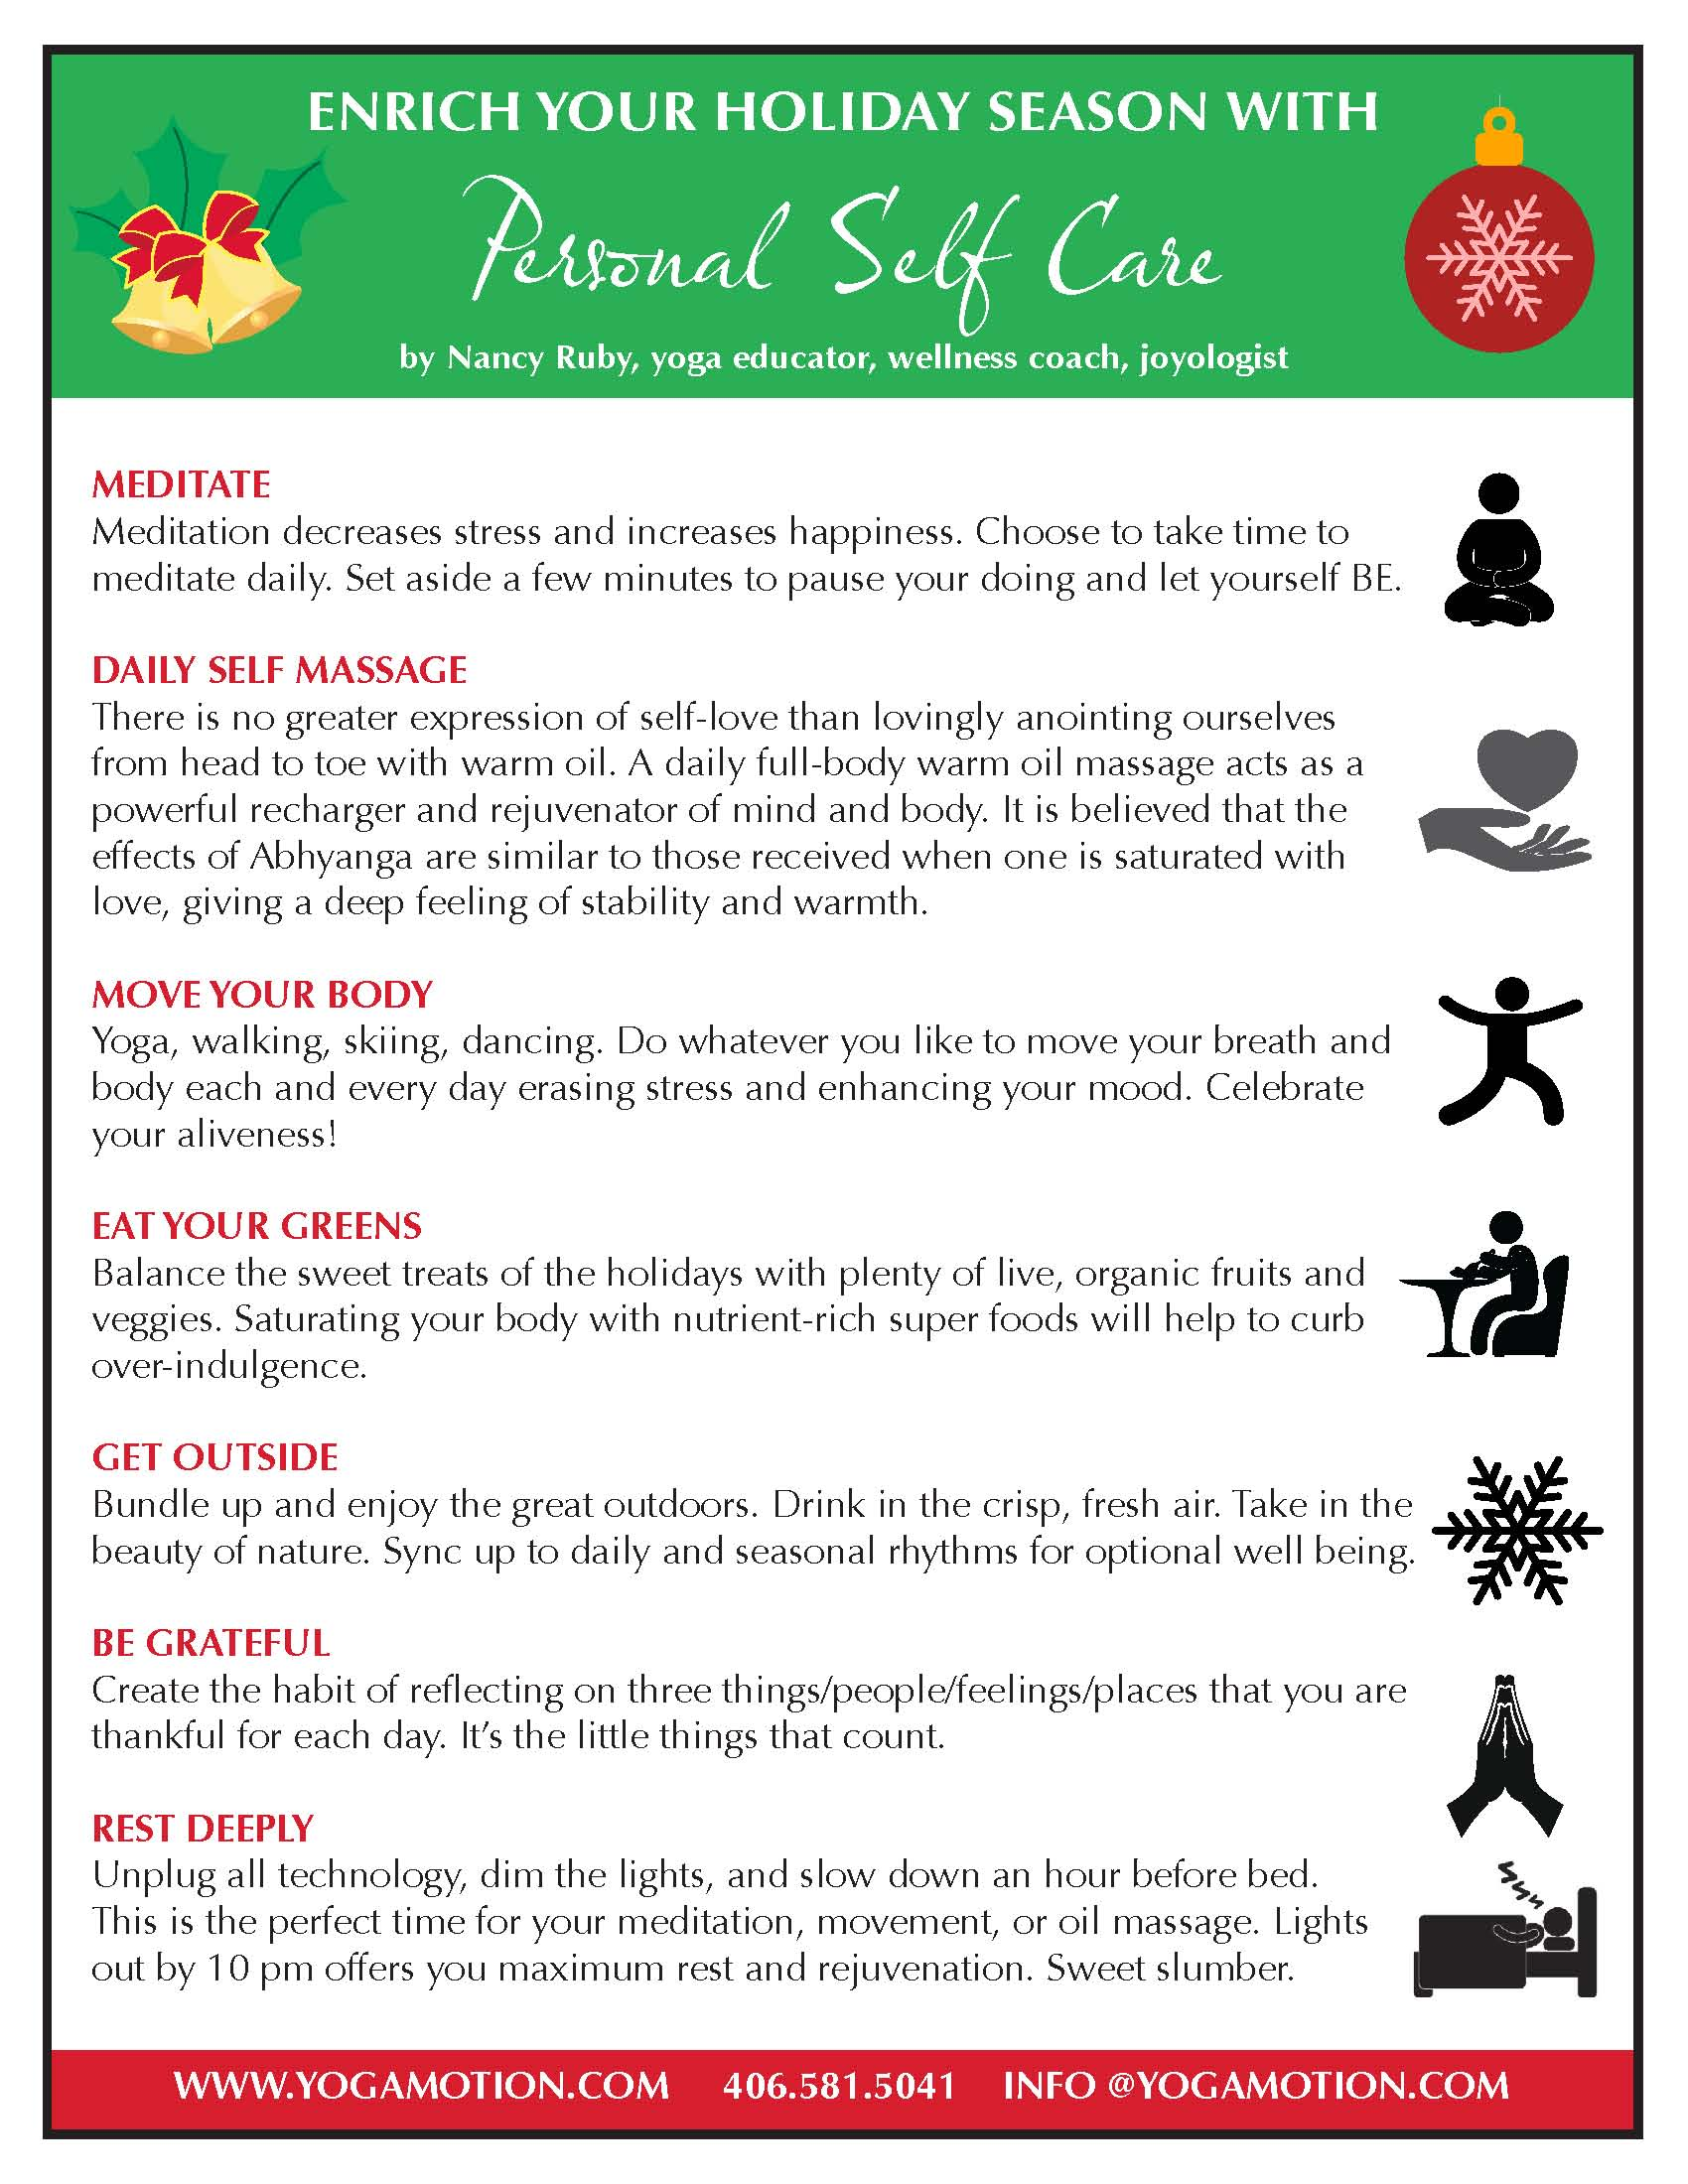 Helpful Tips For The Holidays